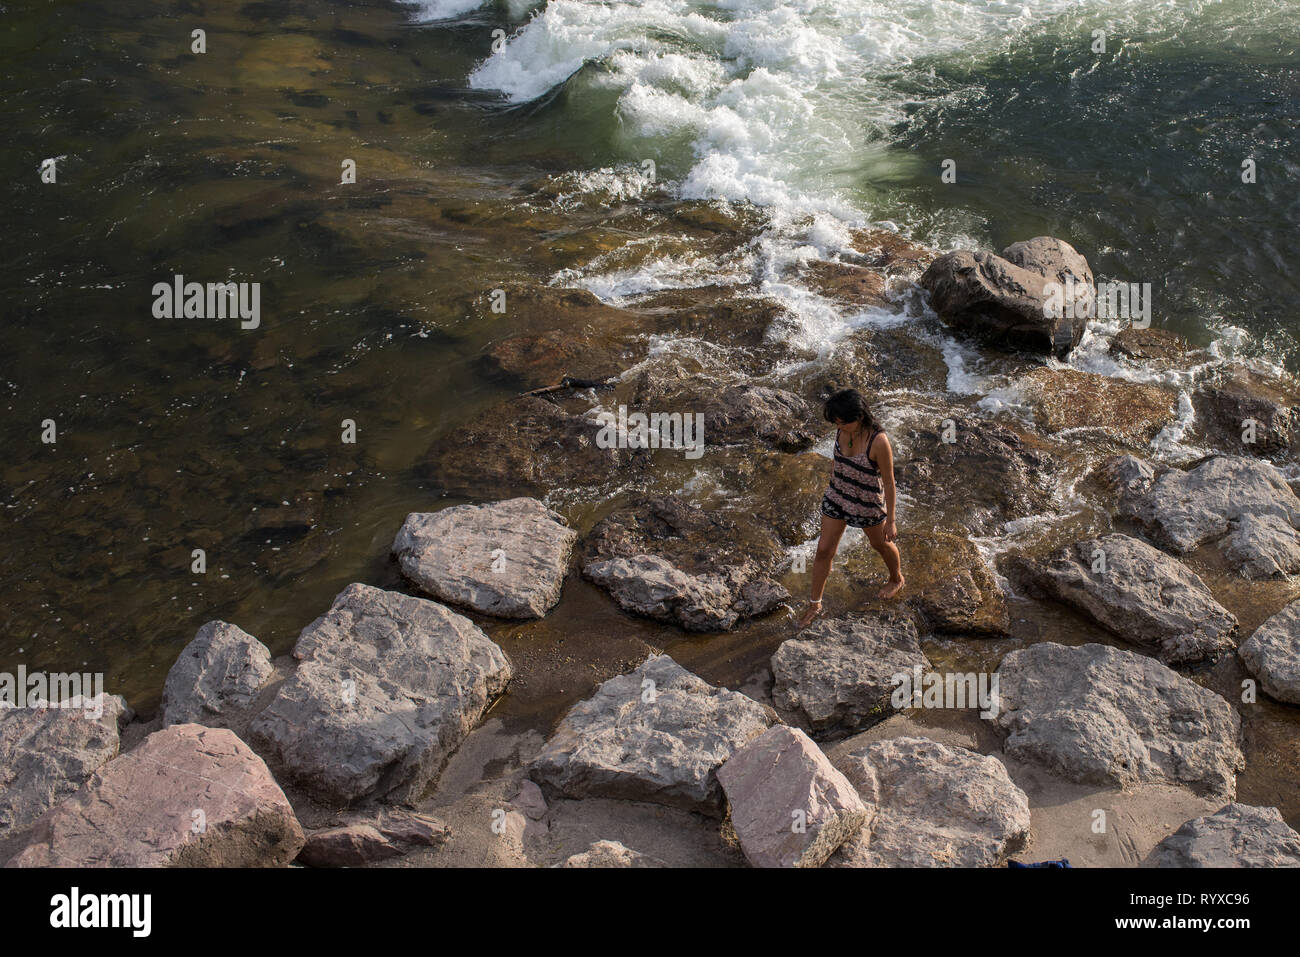 A woman enjoys skipping rocks and observing the kayakers at Brennan's Wave in Missoula, Montana - Stock Image